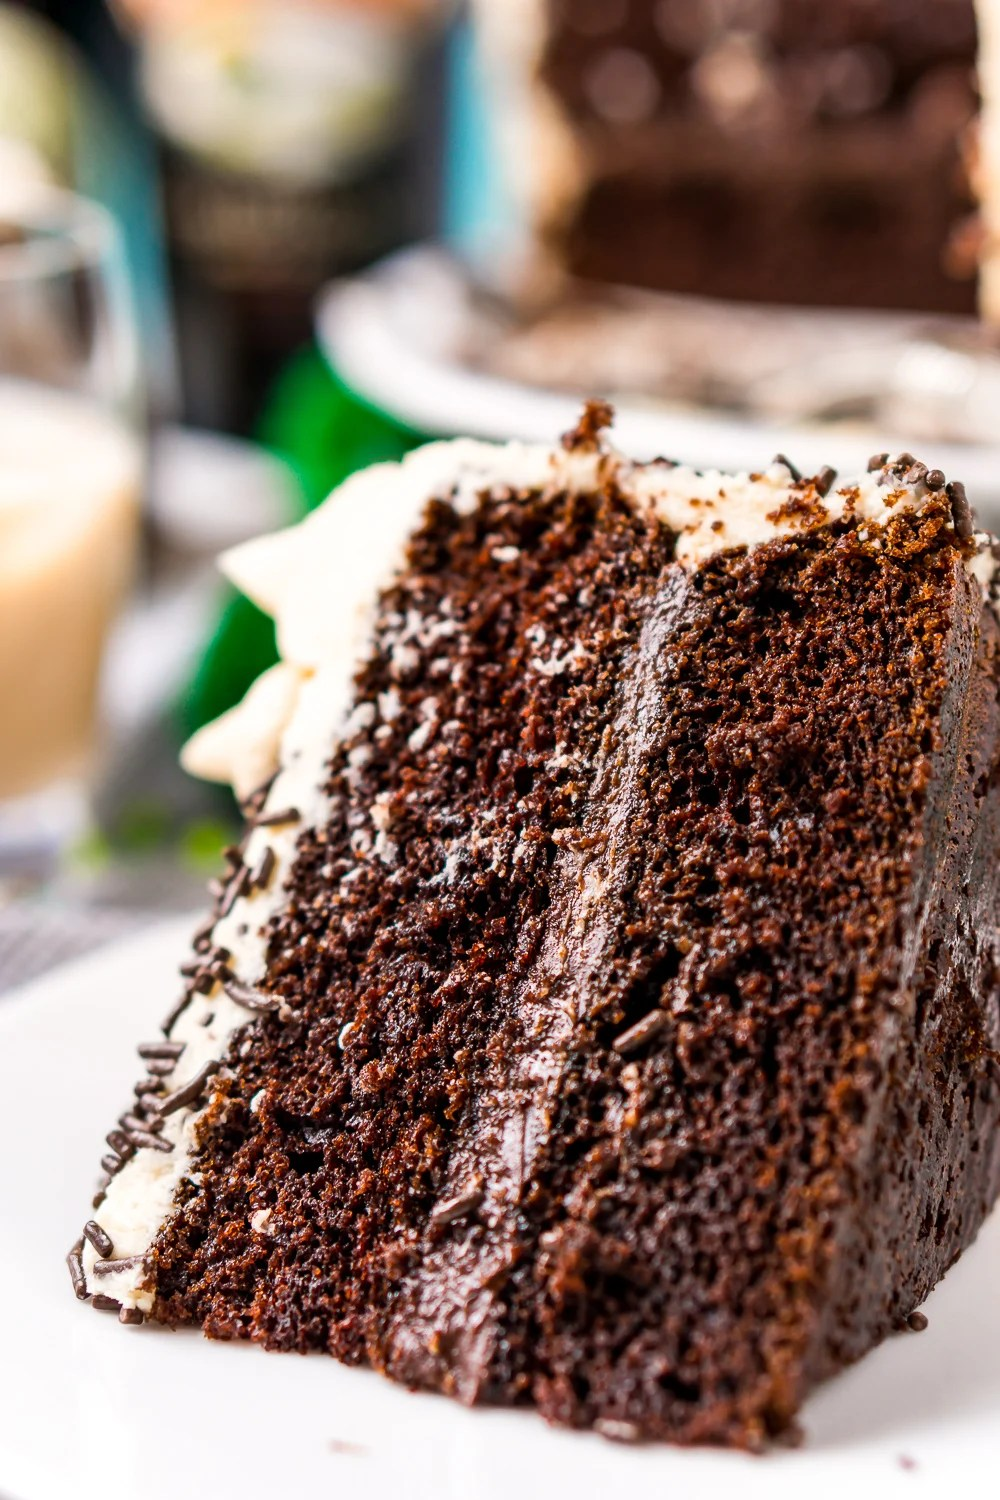 This Chocolate Guinness Cake is made with a rich and tender chocolate cake laced with smooth stout with a chocolate ganache filling and a decadent Irish Cream Frosting!